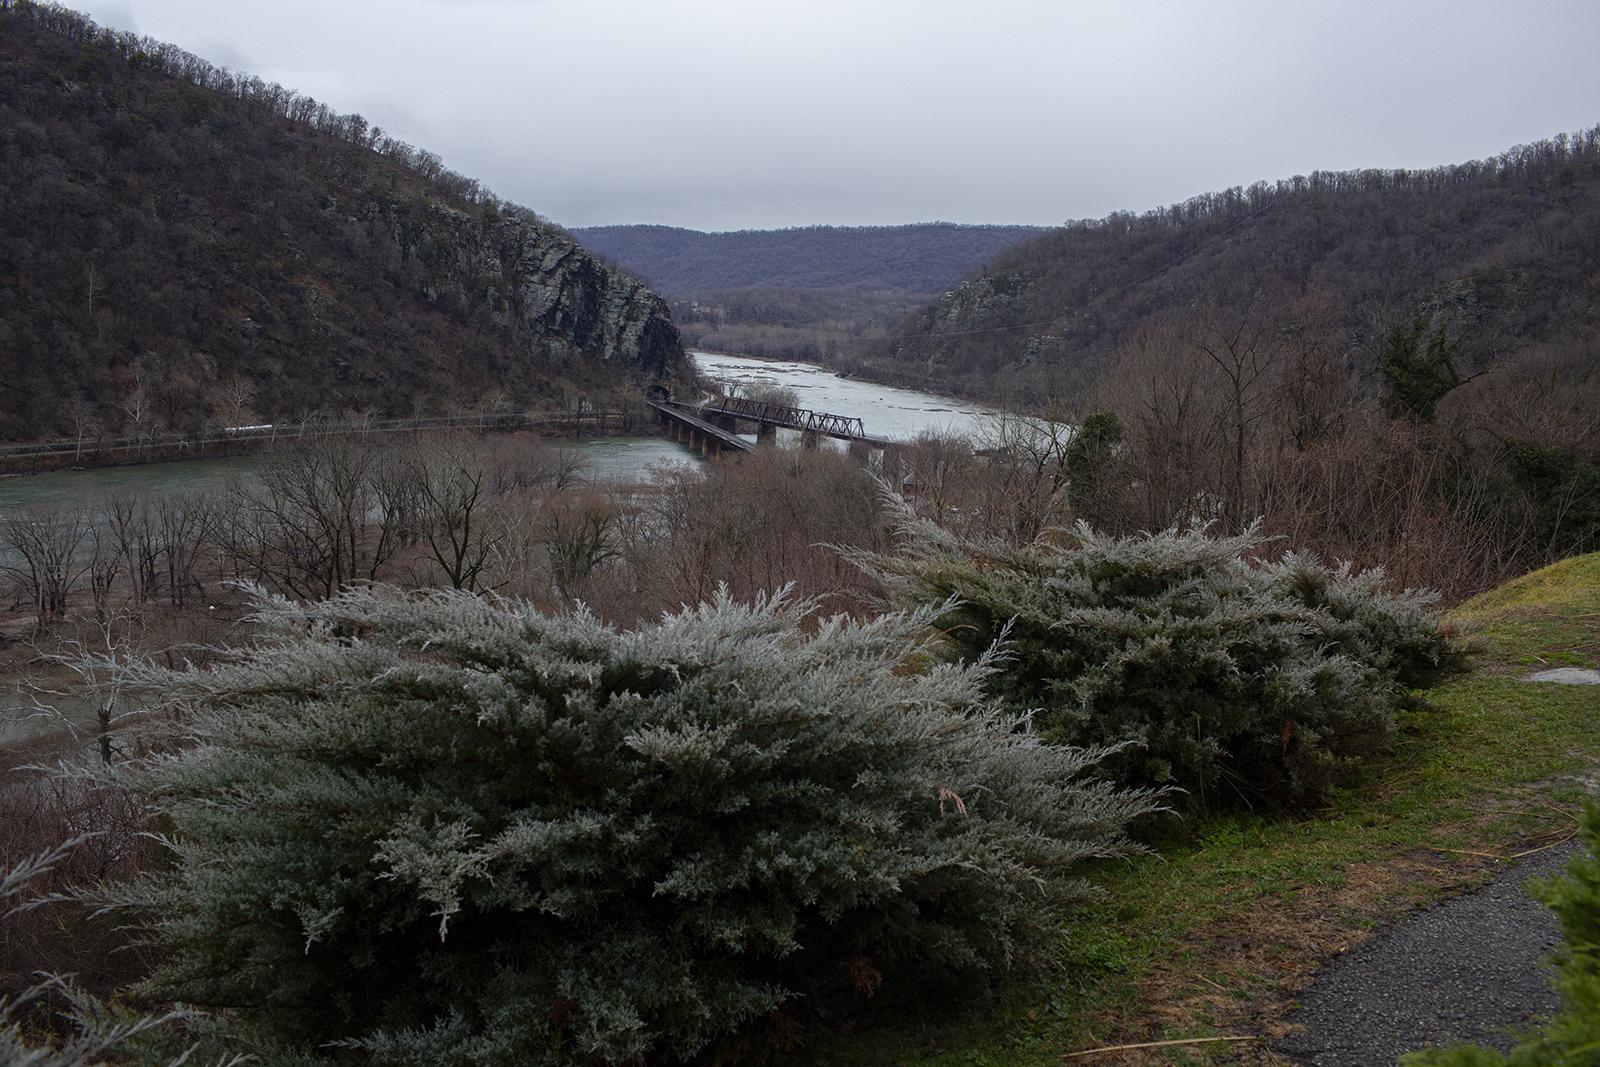 HARPERS FERRY, WV - FEBRUARY 7: Overlooking the Potomac River in Harpers Ferry, WV on the land that could be part of the Hilltop House Hotel development. (Photo by Robb Hill for The Washington Post)